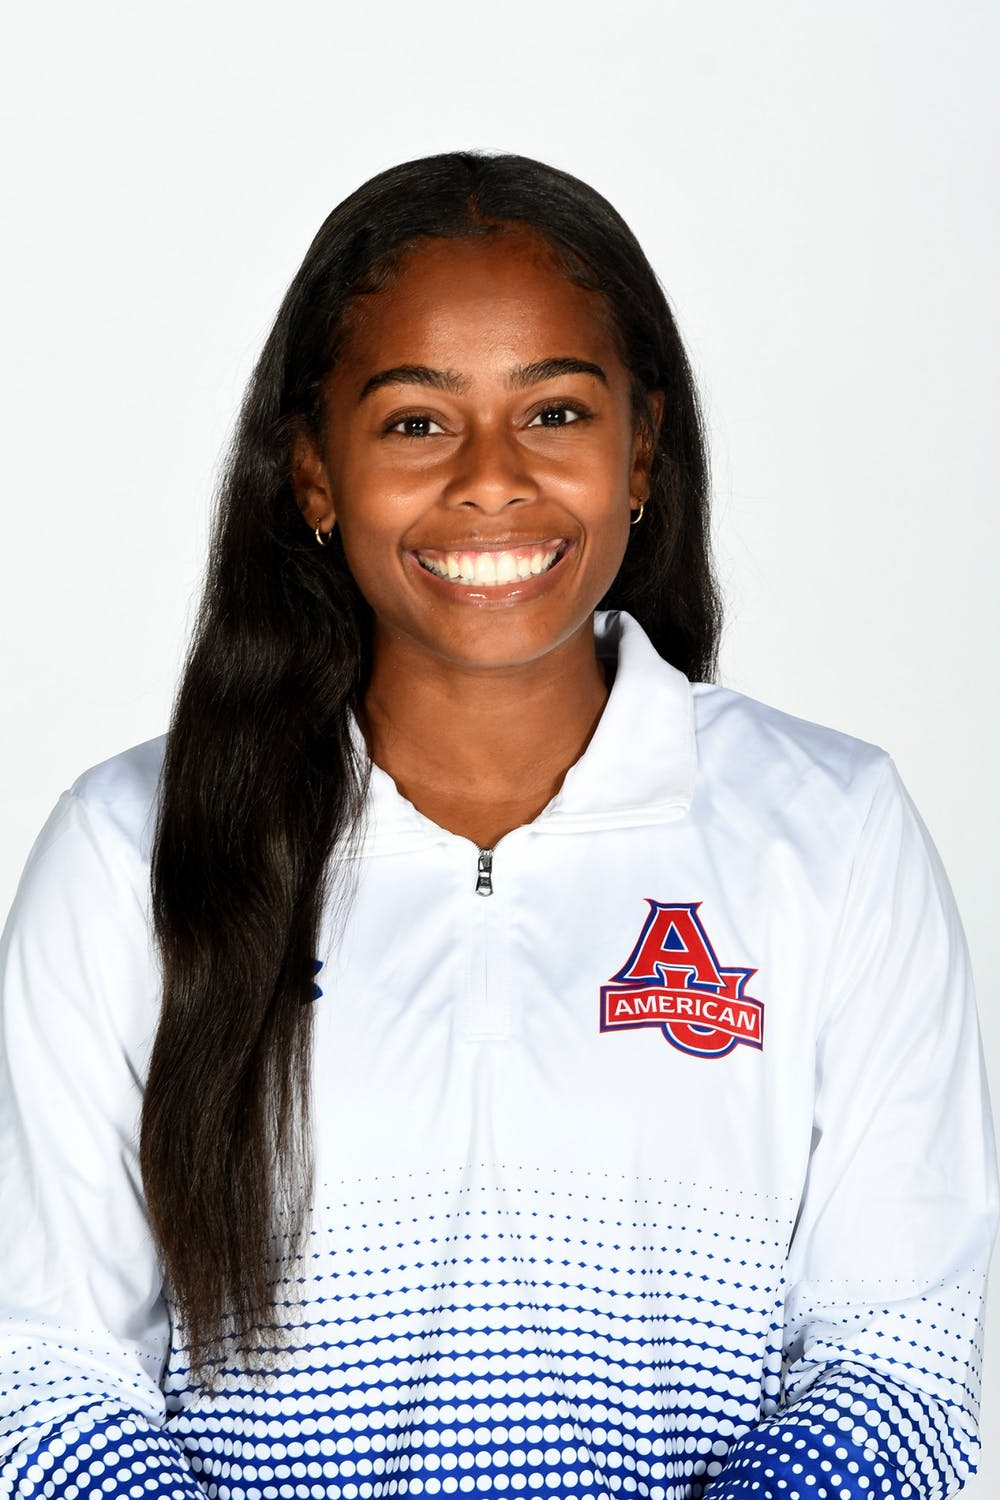 New track and cross country assistant coach Tyra Massey is ready to take on new challenges